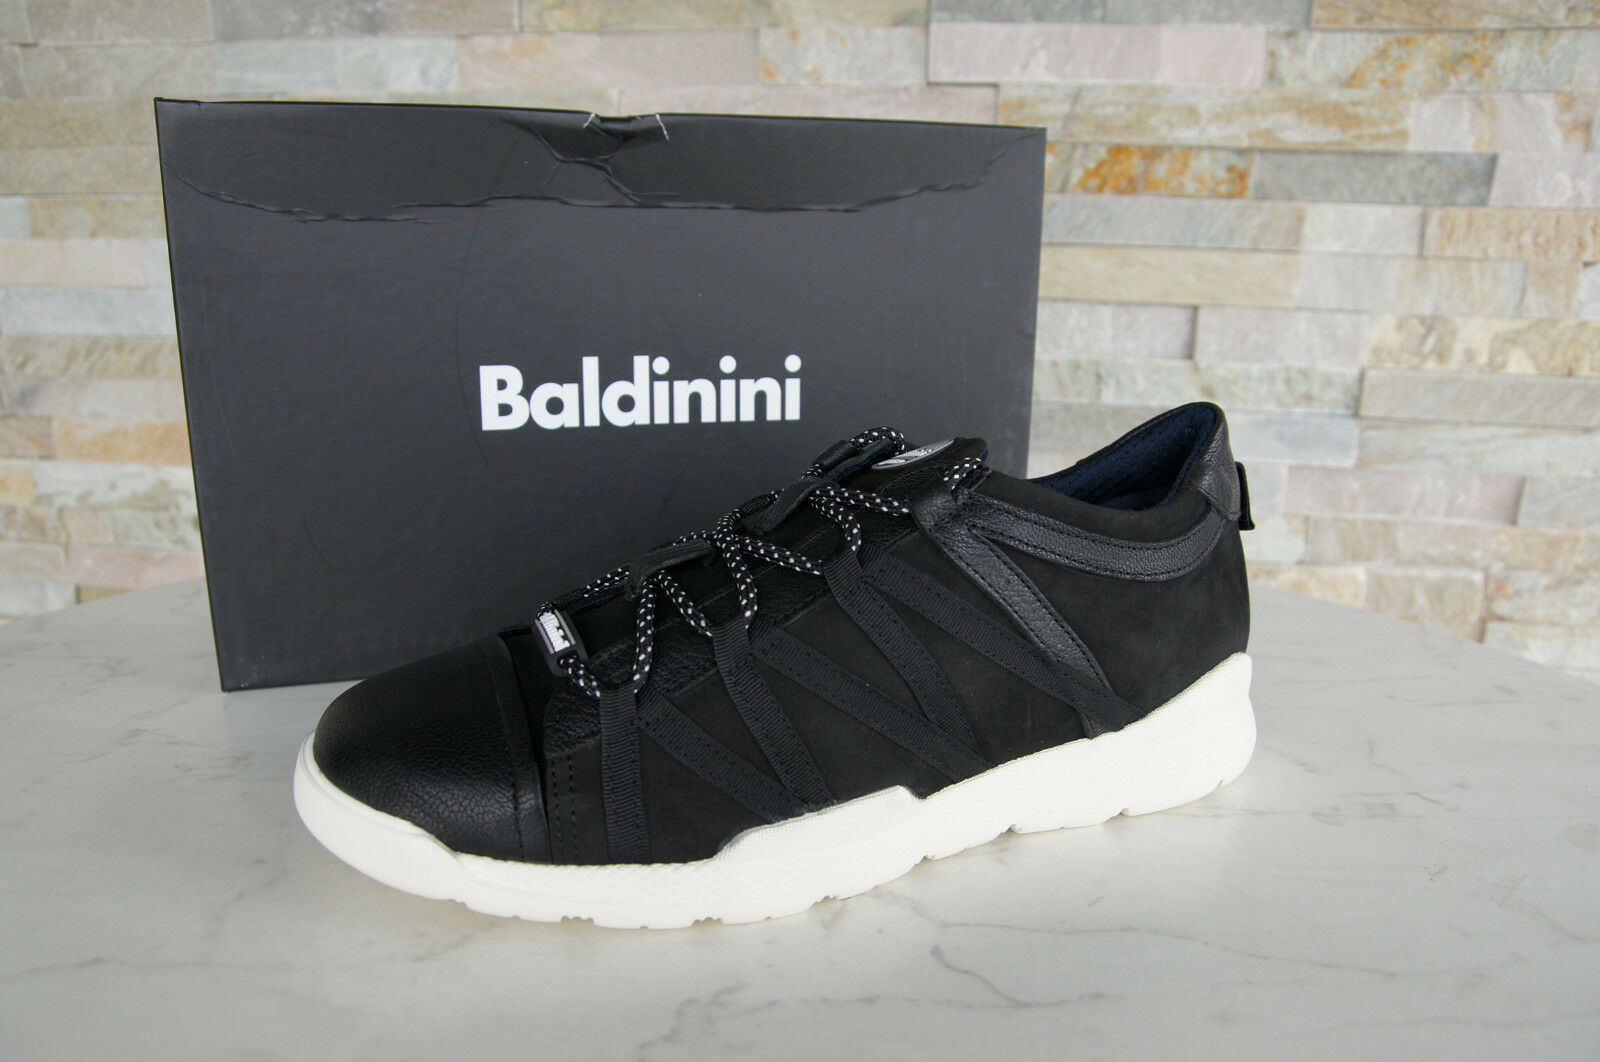 Baldinini Size 45 Sneakers Lace up Low shoes Black New Ehemuvp